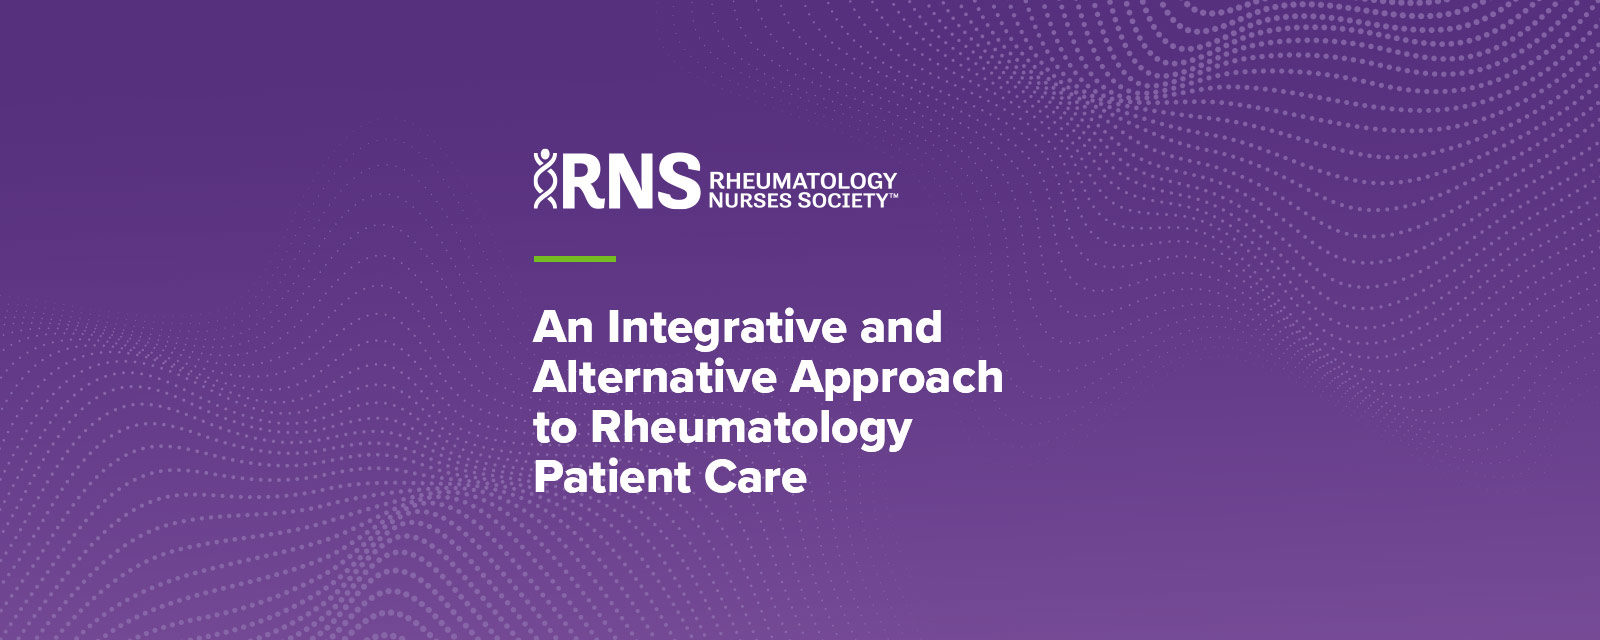 An Integrative and Alternative Approach to Rheumatology Patient Care